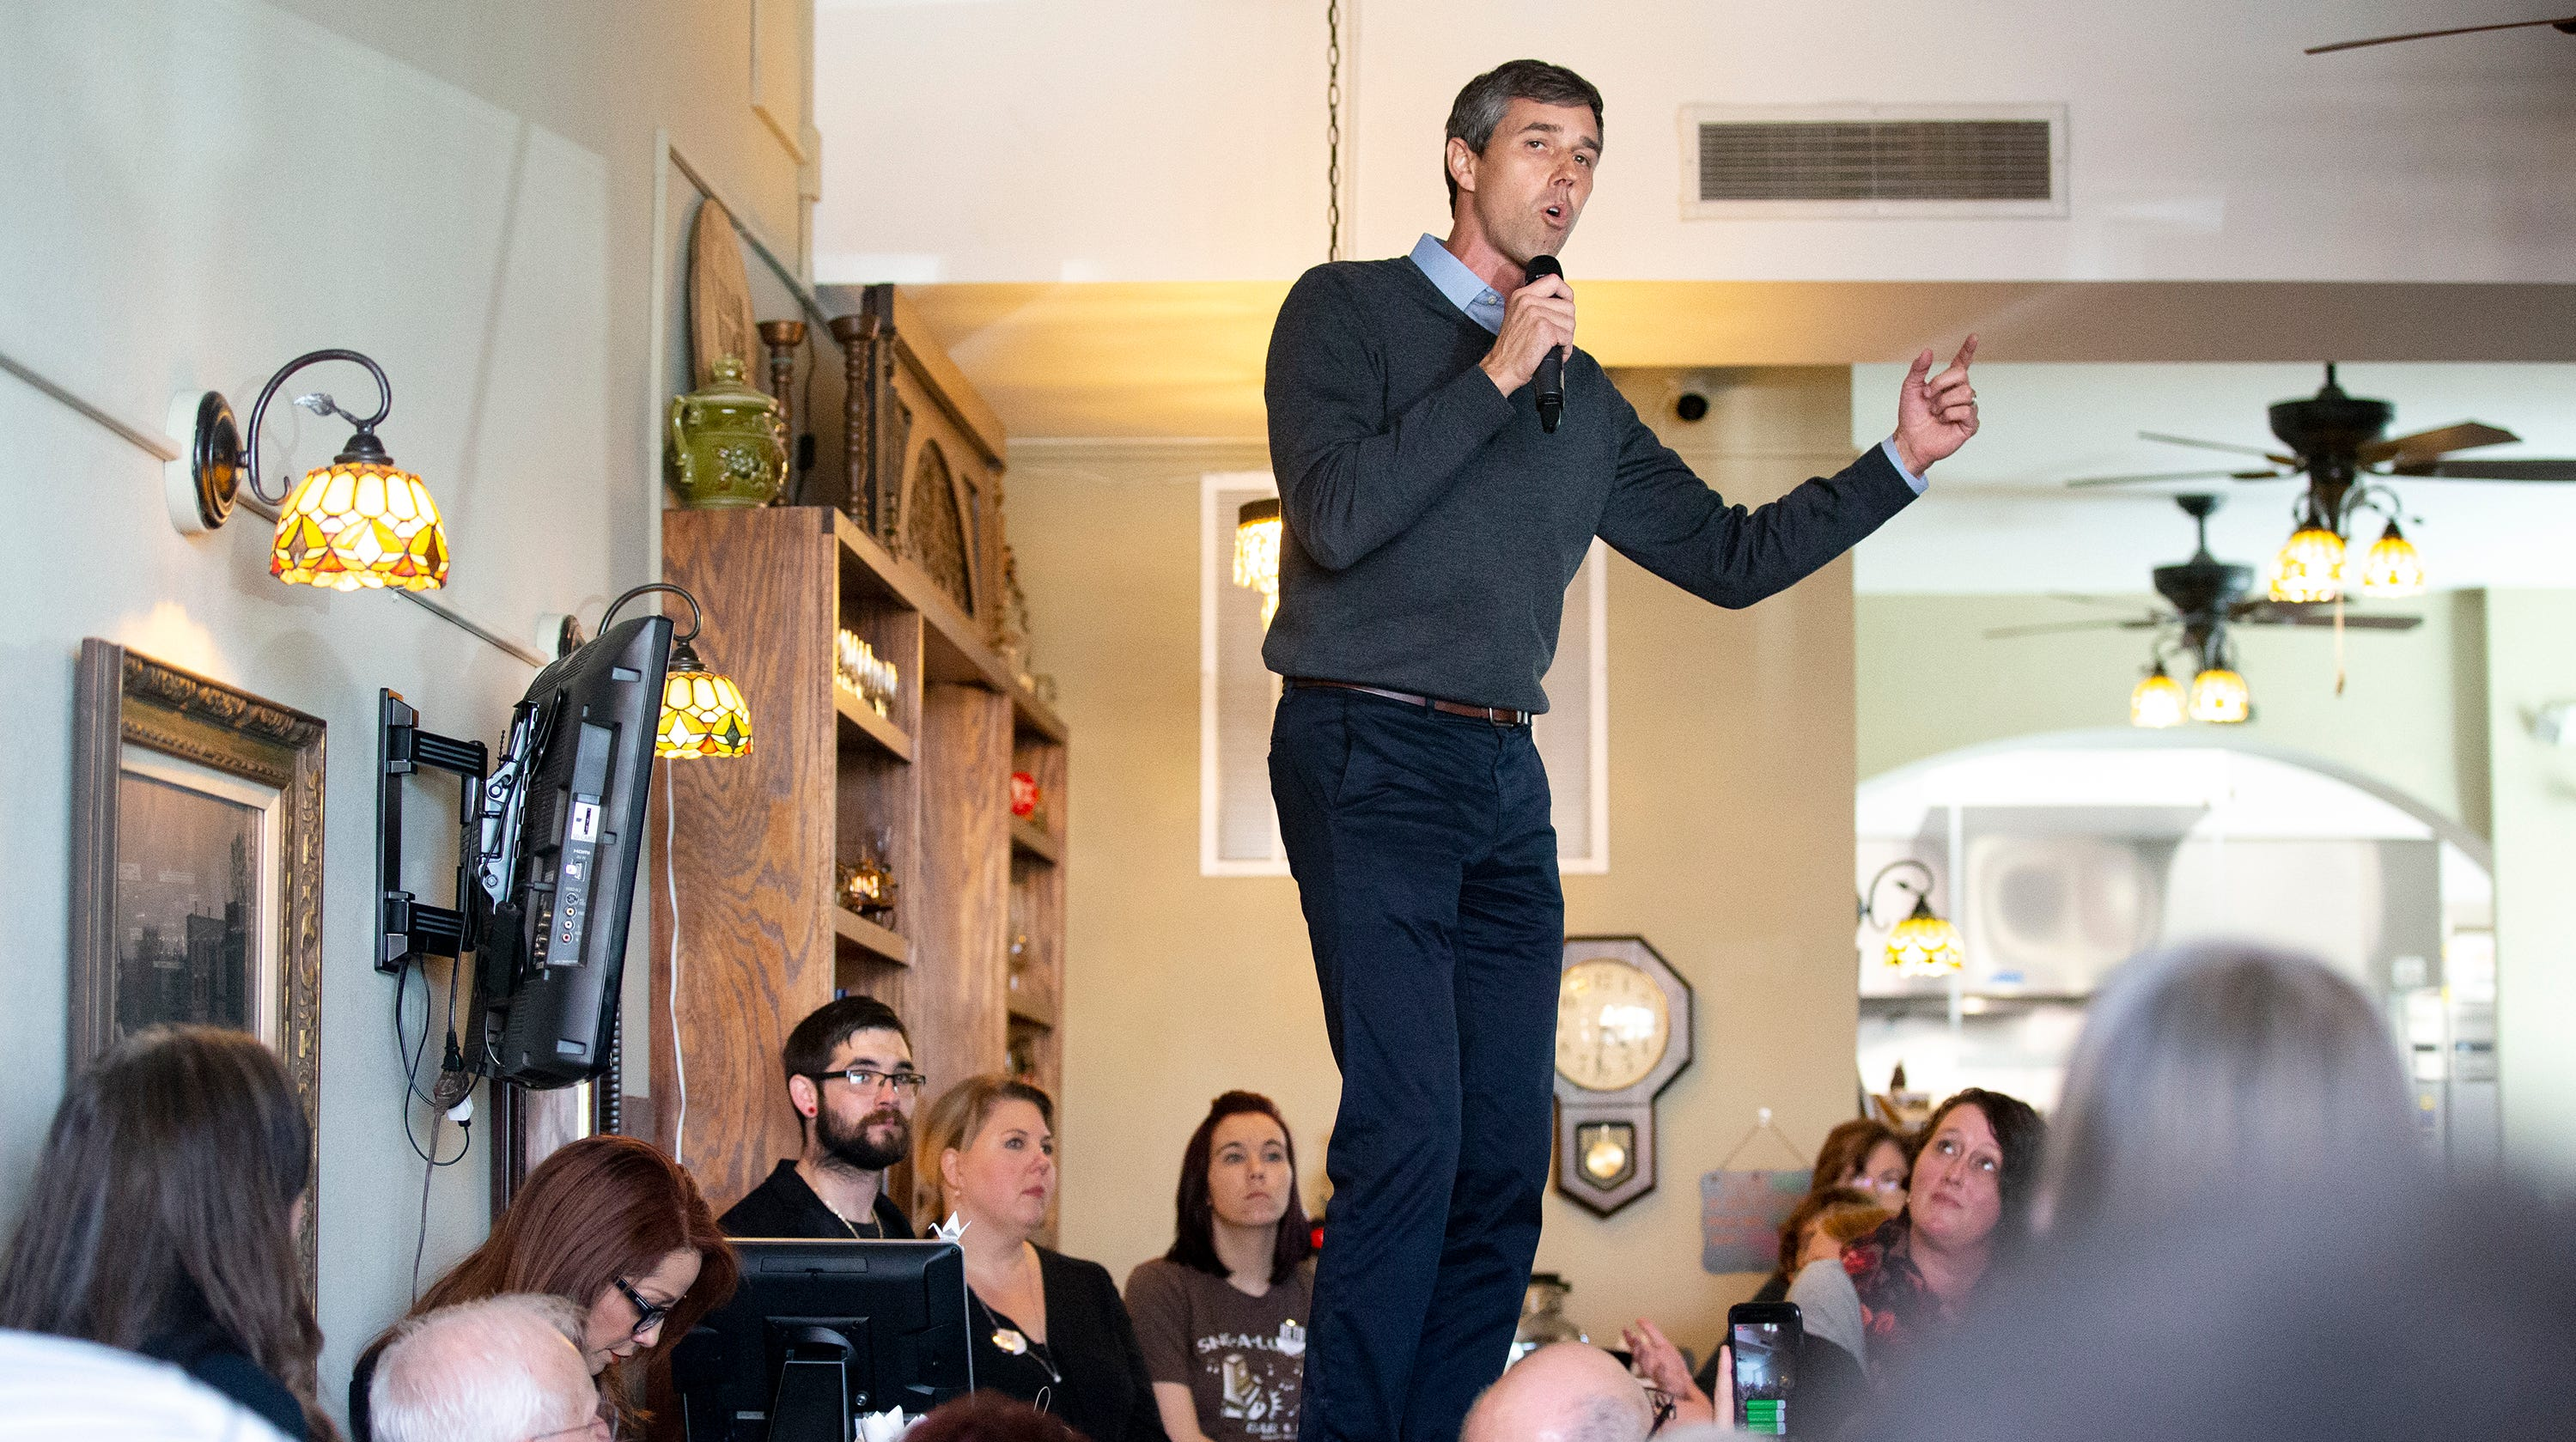 Beto O'Rourke, Democratic candidate for president, speaks to an at-capacity crowd inside the Sing-A-Long Bar and Grill on Friday, March 15, 2019, in Mount Vernon. This is O'Rourke's first trip to Iowa after announcing his campaign.